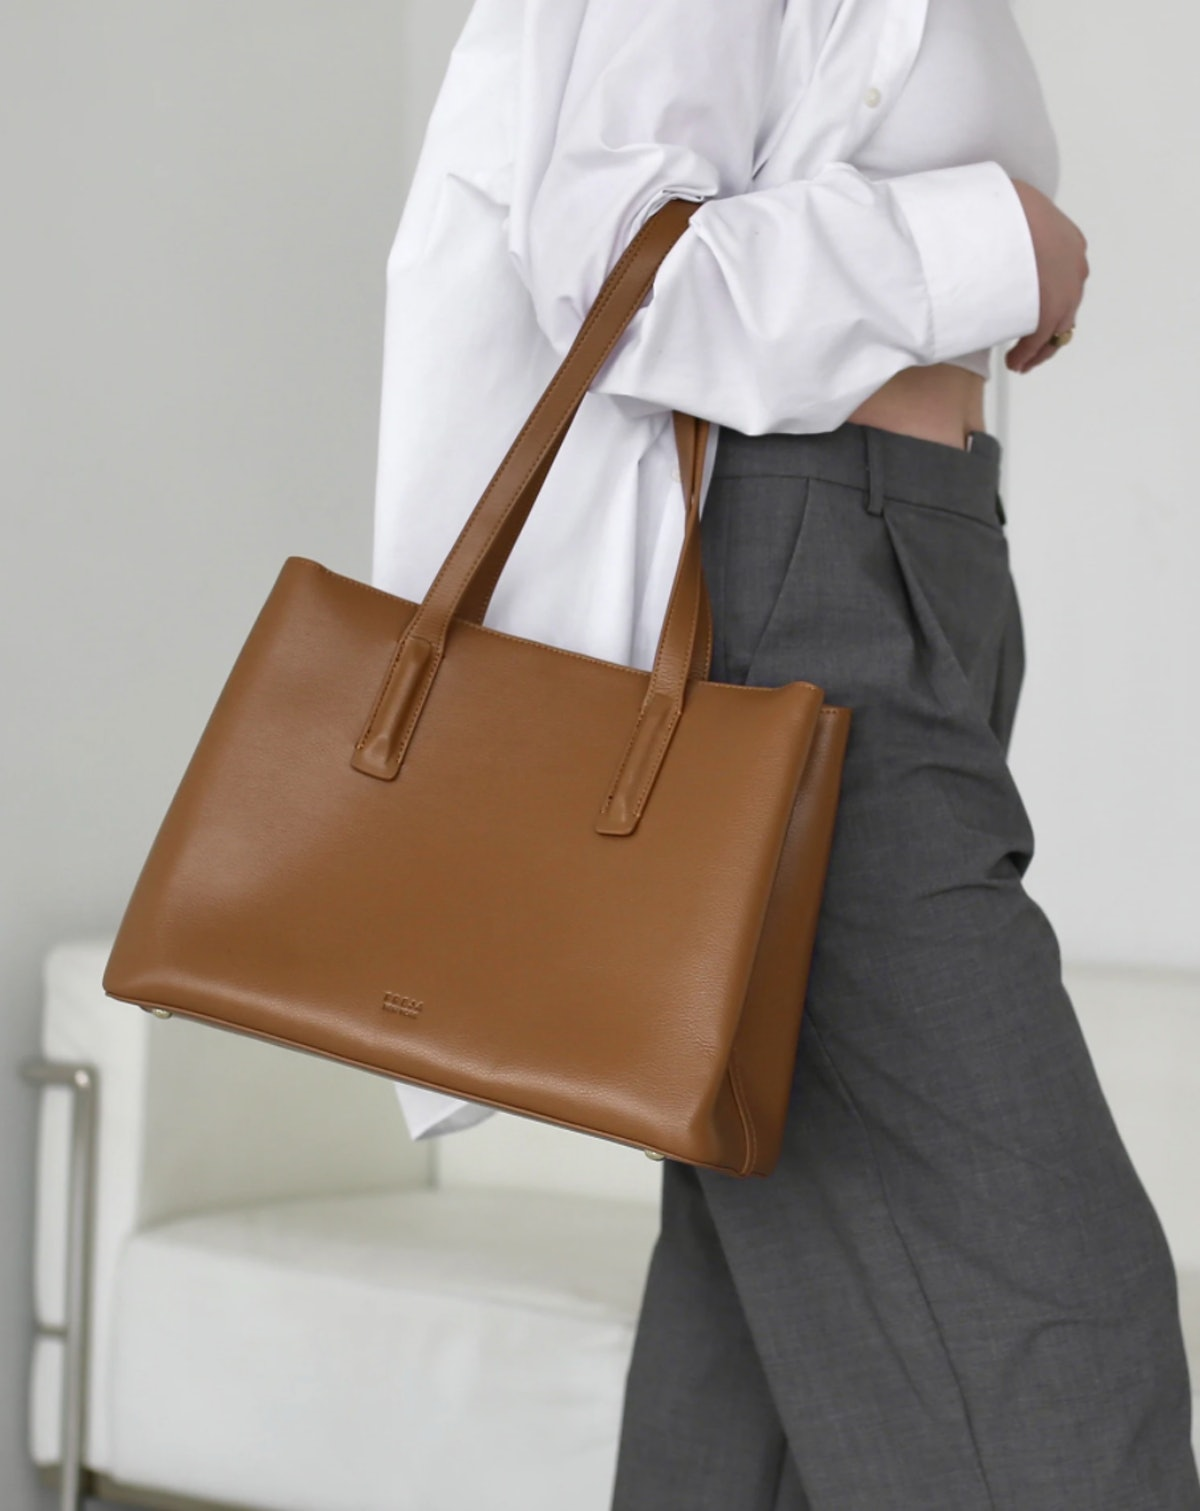 A caramel colored tote bag by Freja New York that can fit a 13-14 inch laptop.